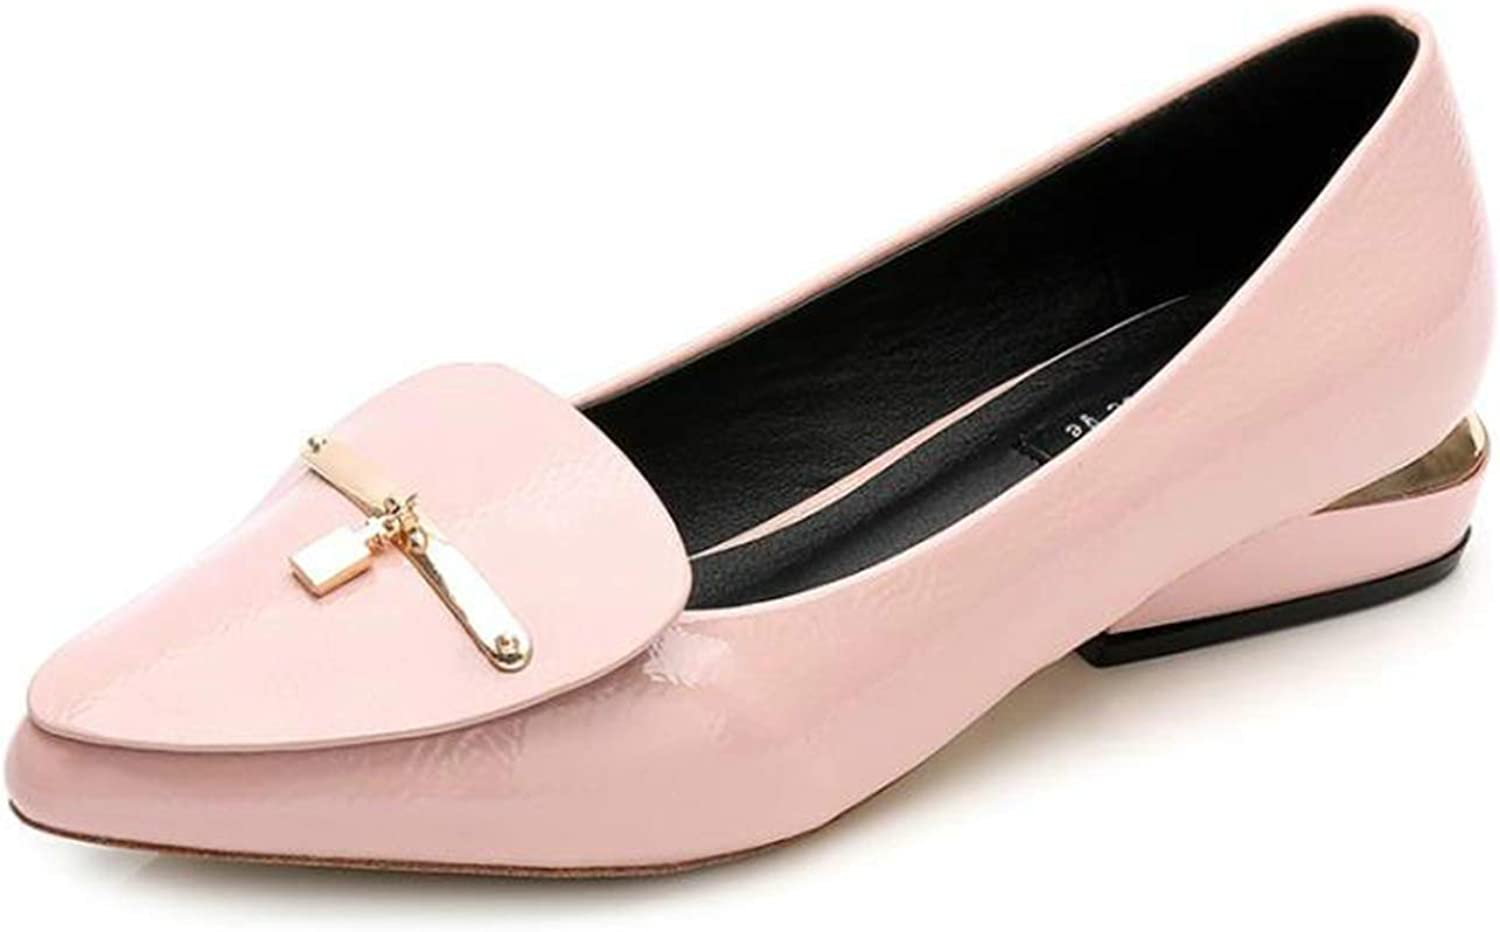 shoes Patent Leather Flat shoes Pointed Toe Woman Loafers Metal Buckle Decoration Casual Black Pink shoes shoes women